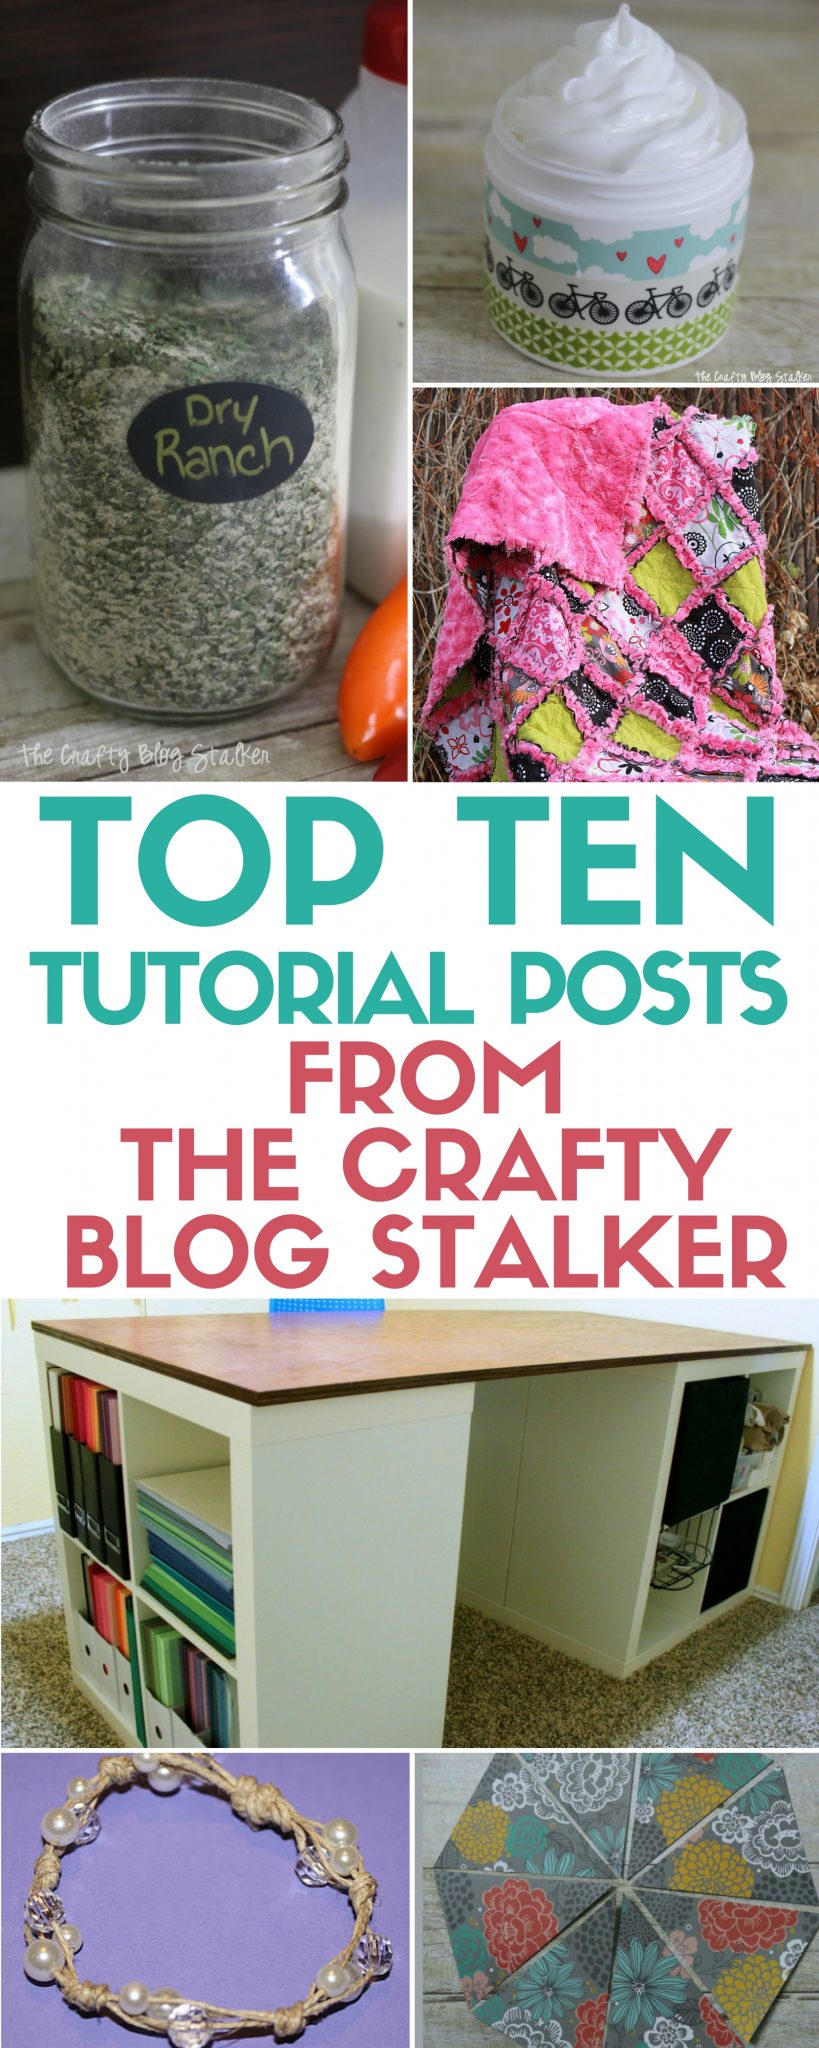 Welcome To The Crafty Blog Stalker Site! Get To Know This Fun Tutorial  Based Site